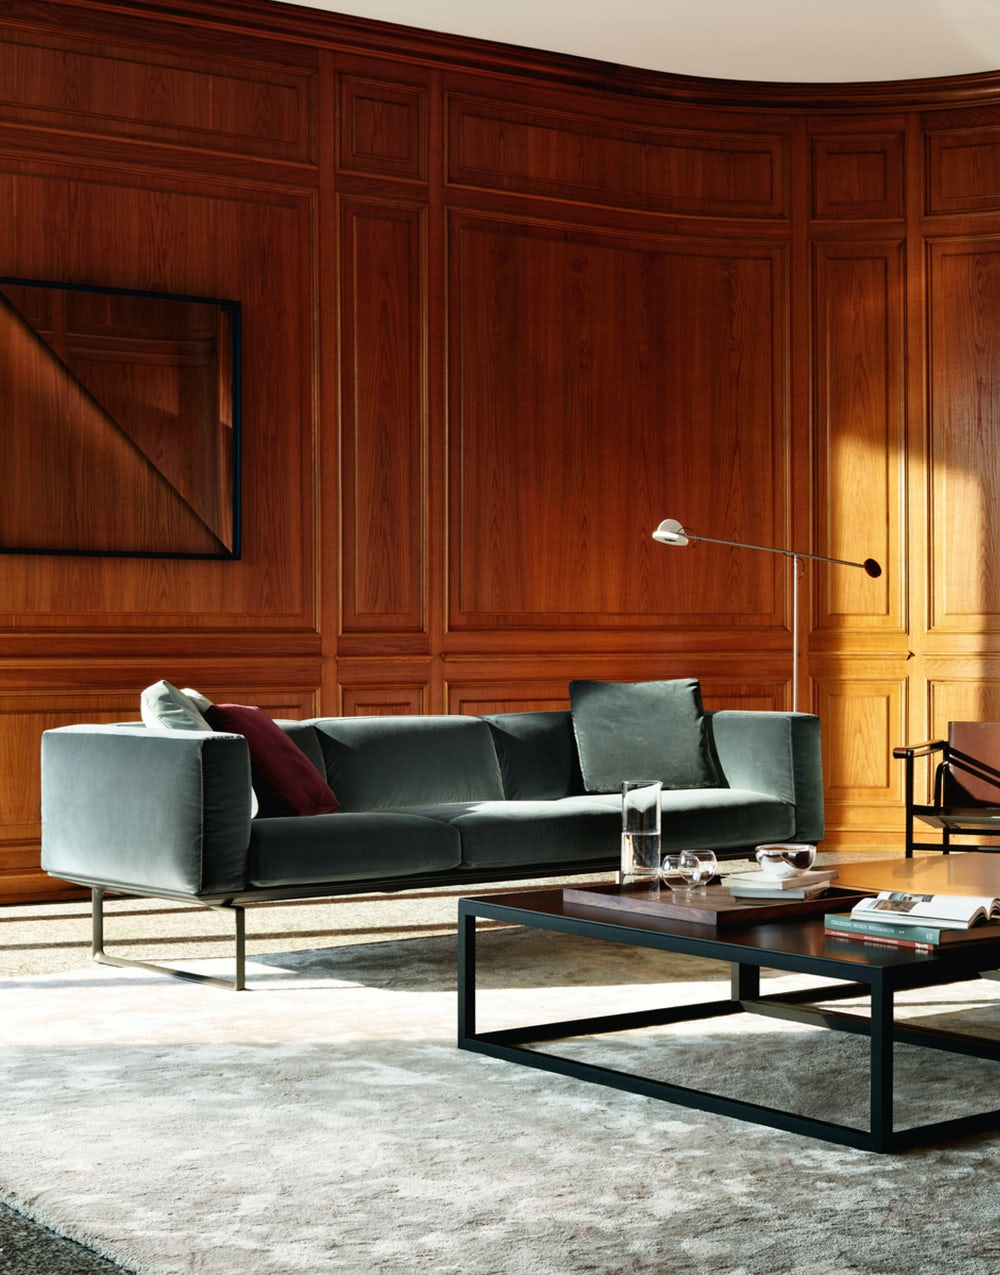 Cube sofa Piero Lissoni Cassina 3